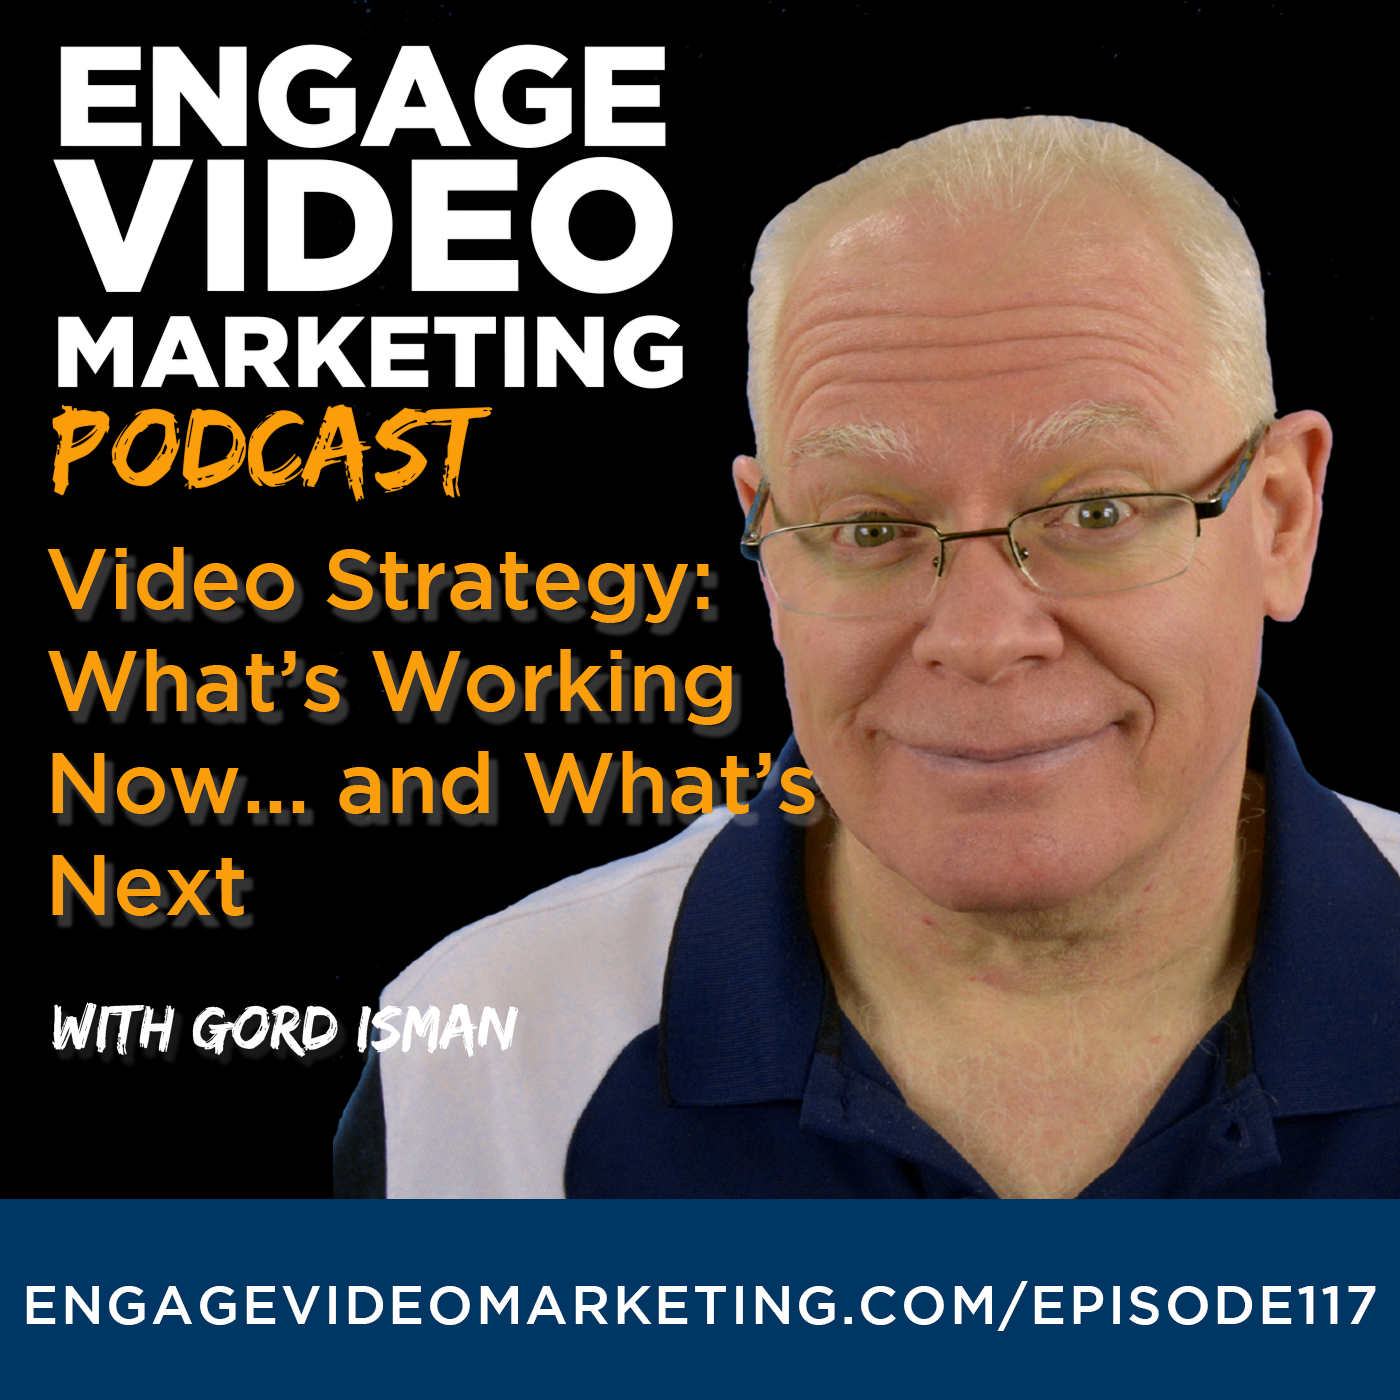 Video Strategy: What's Working Now… and What's Next with Gord Isman